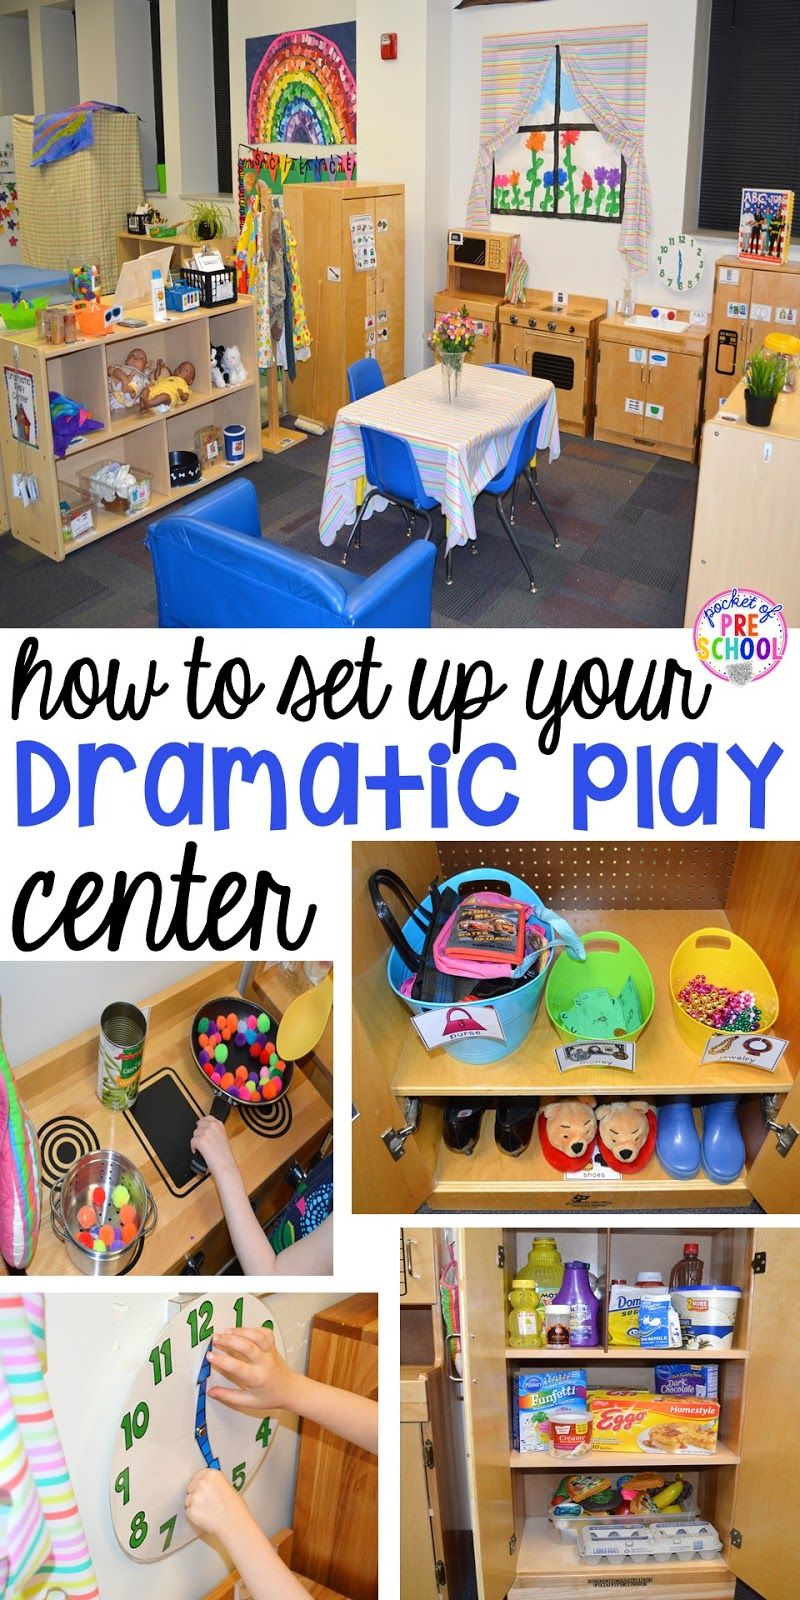 Kinder Garden: How To Set Up The Dramatic Play Center In An Early